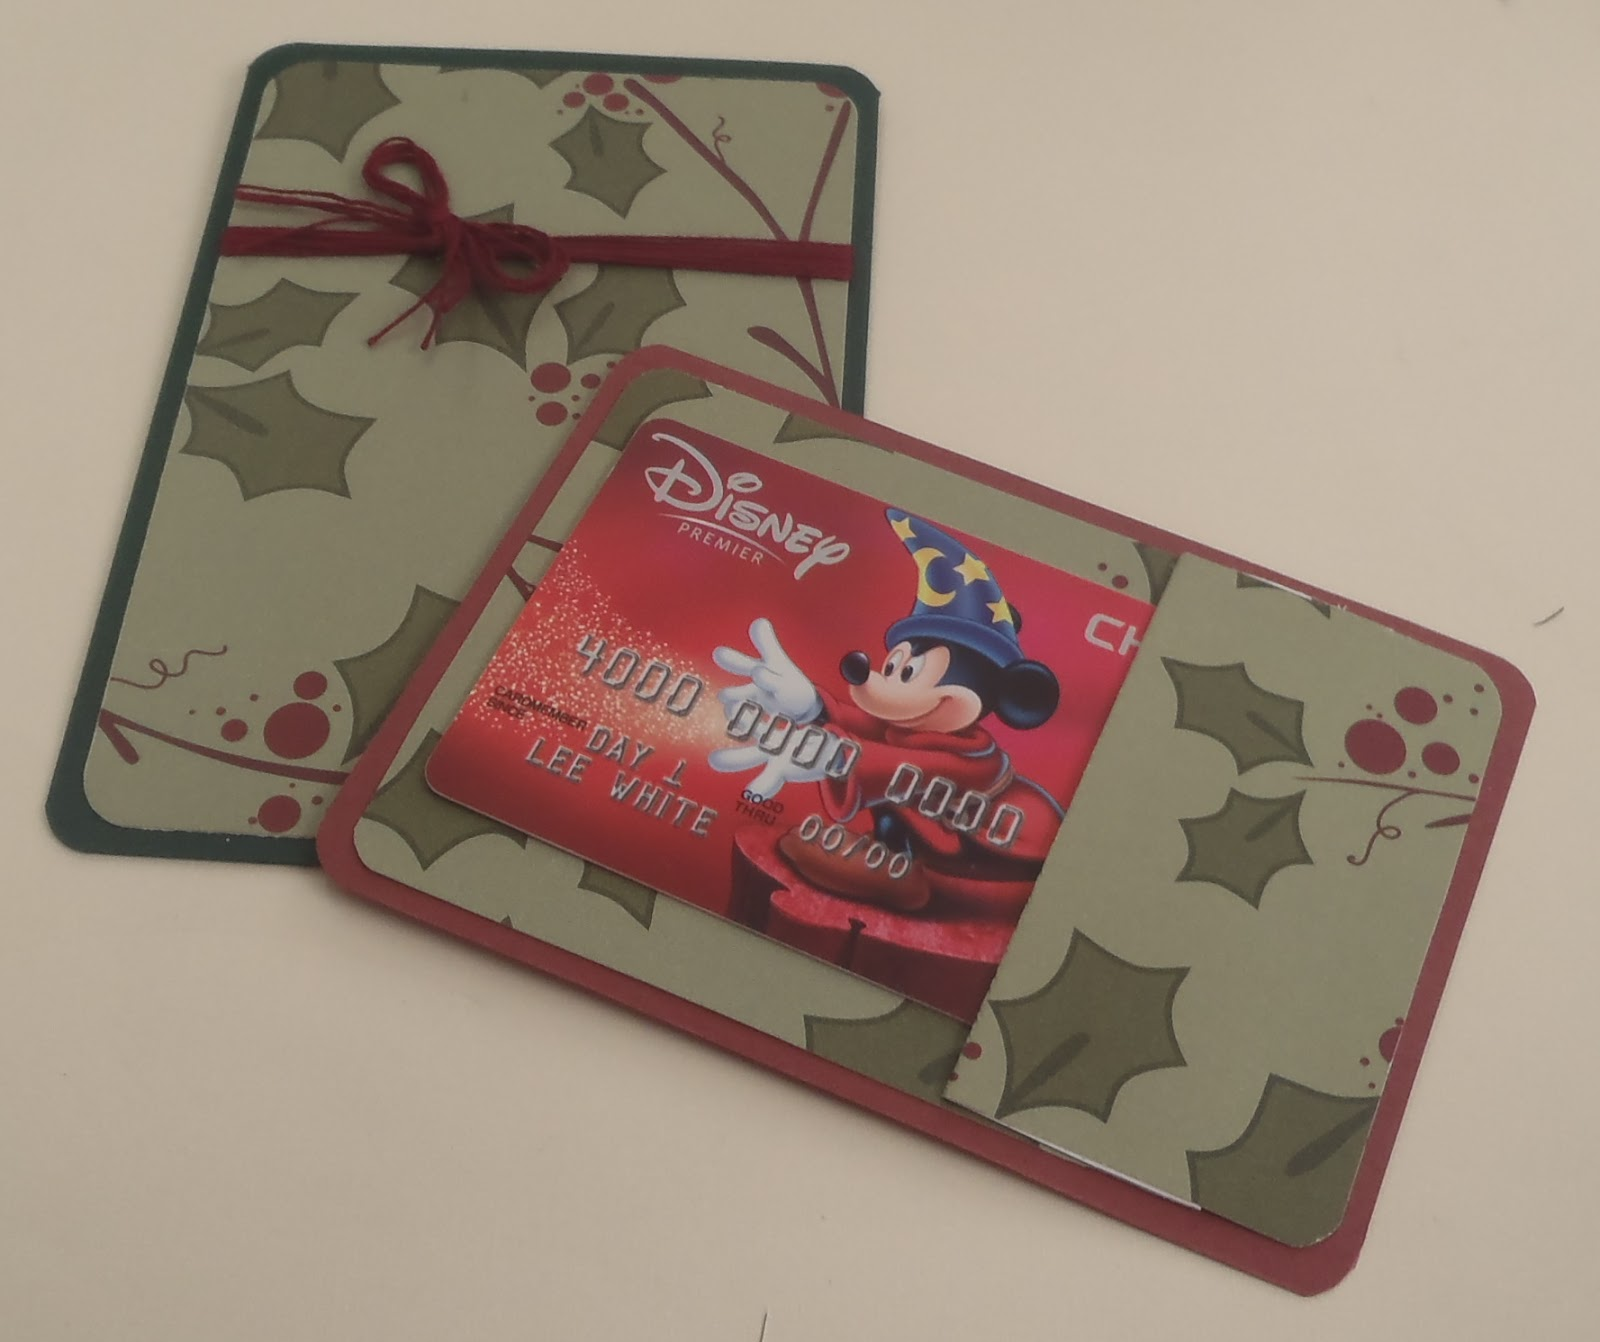 Mashed potatoes and crafts christmas gift card holder for Christmas card holder craft project